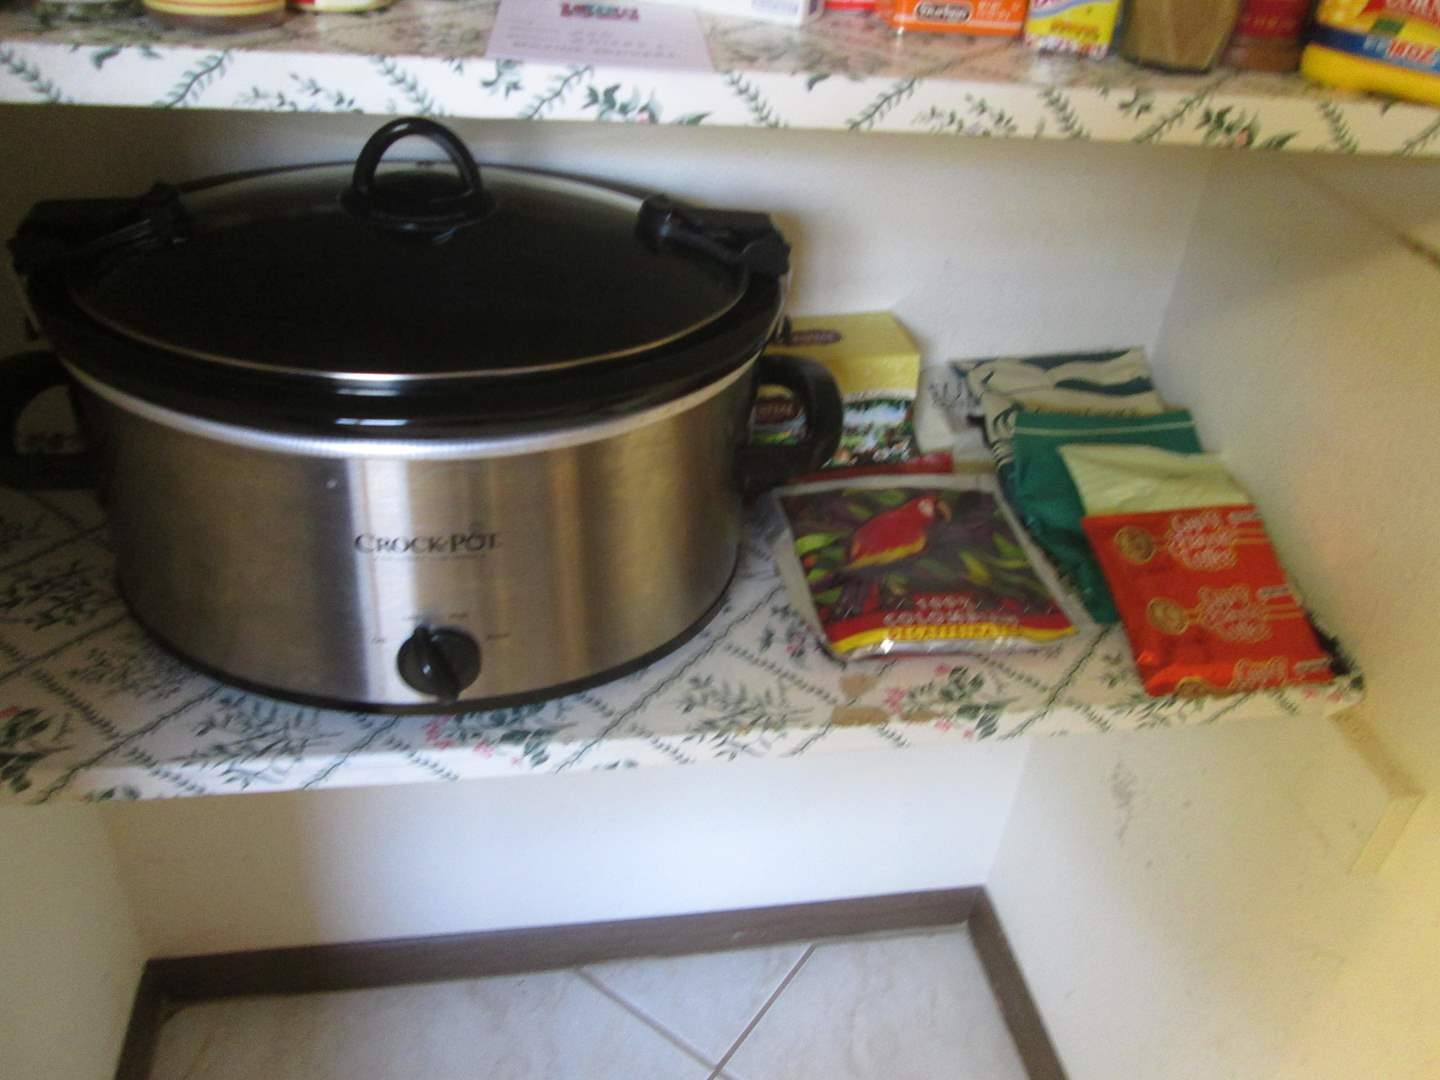 Lot # 257 - Crockpot & Assorted Coffees (main image)